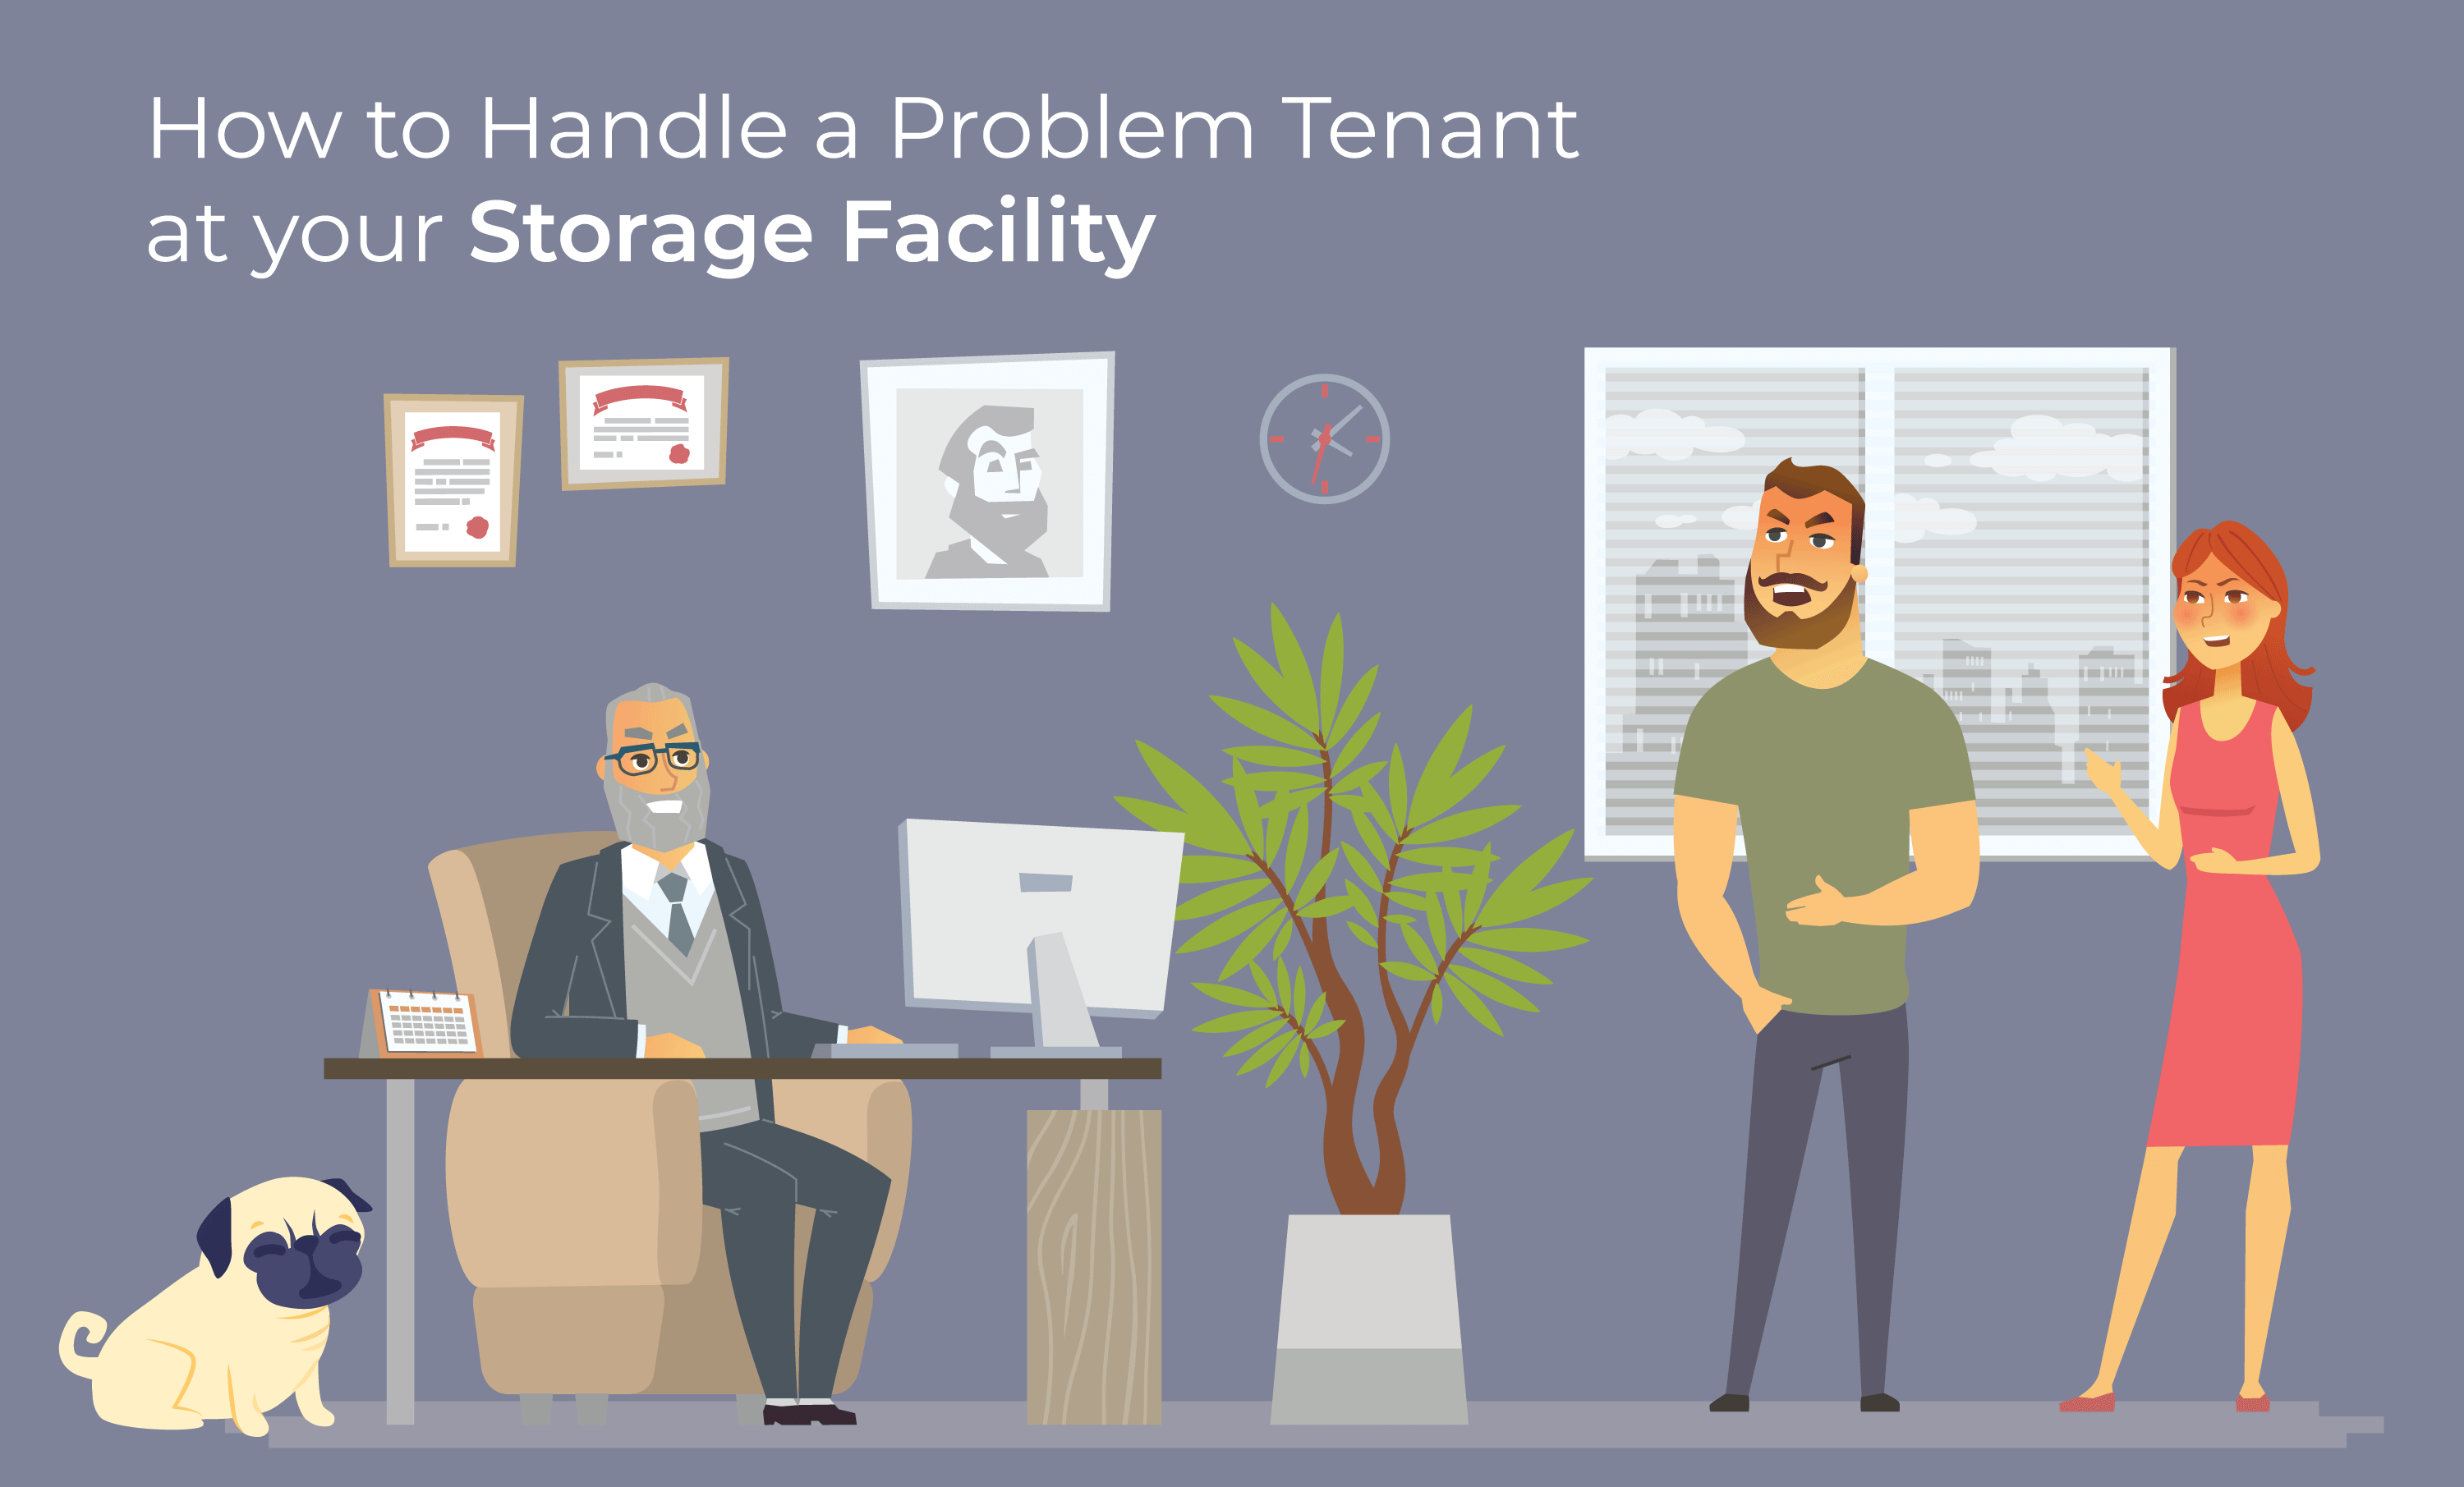 How to Handle a Problem Tenant at your Storage Facility